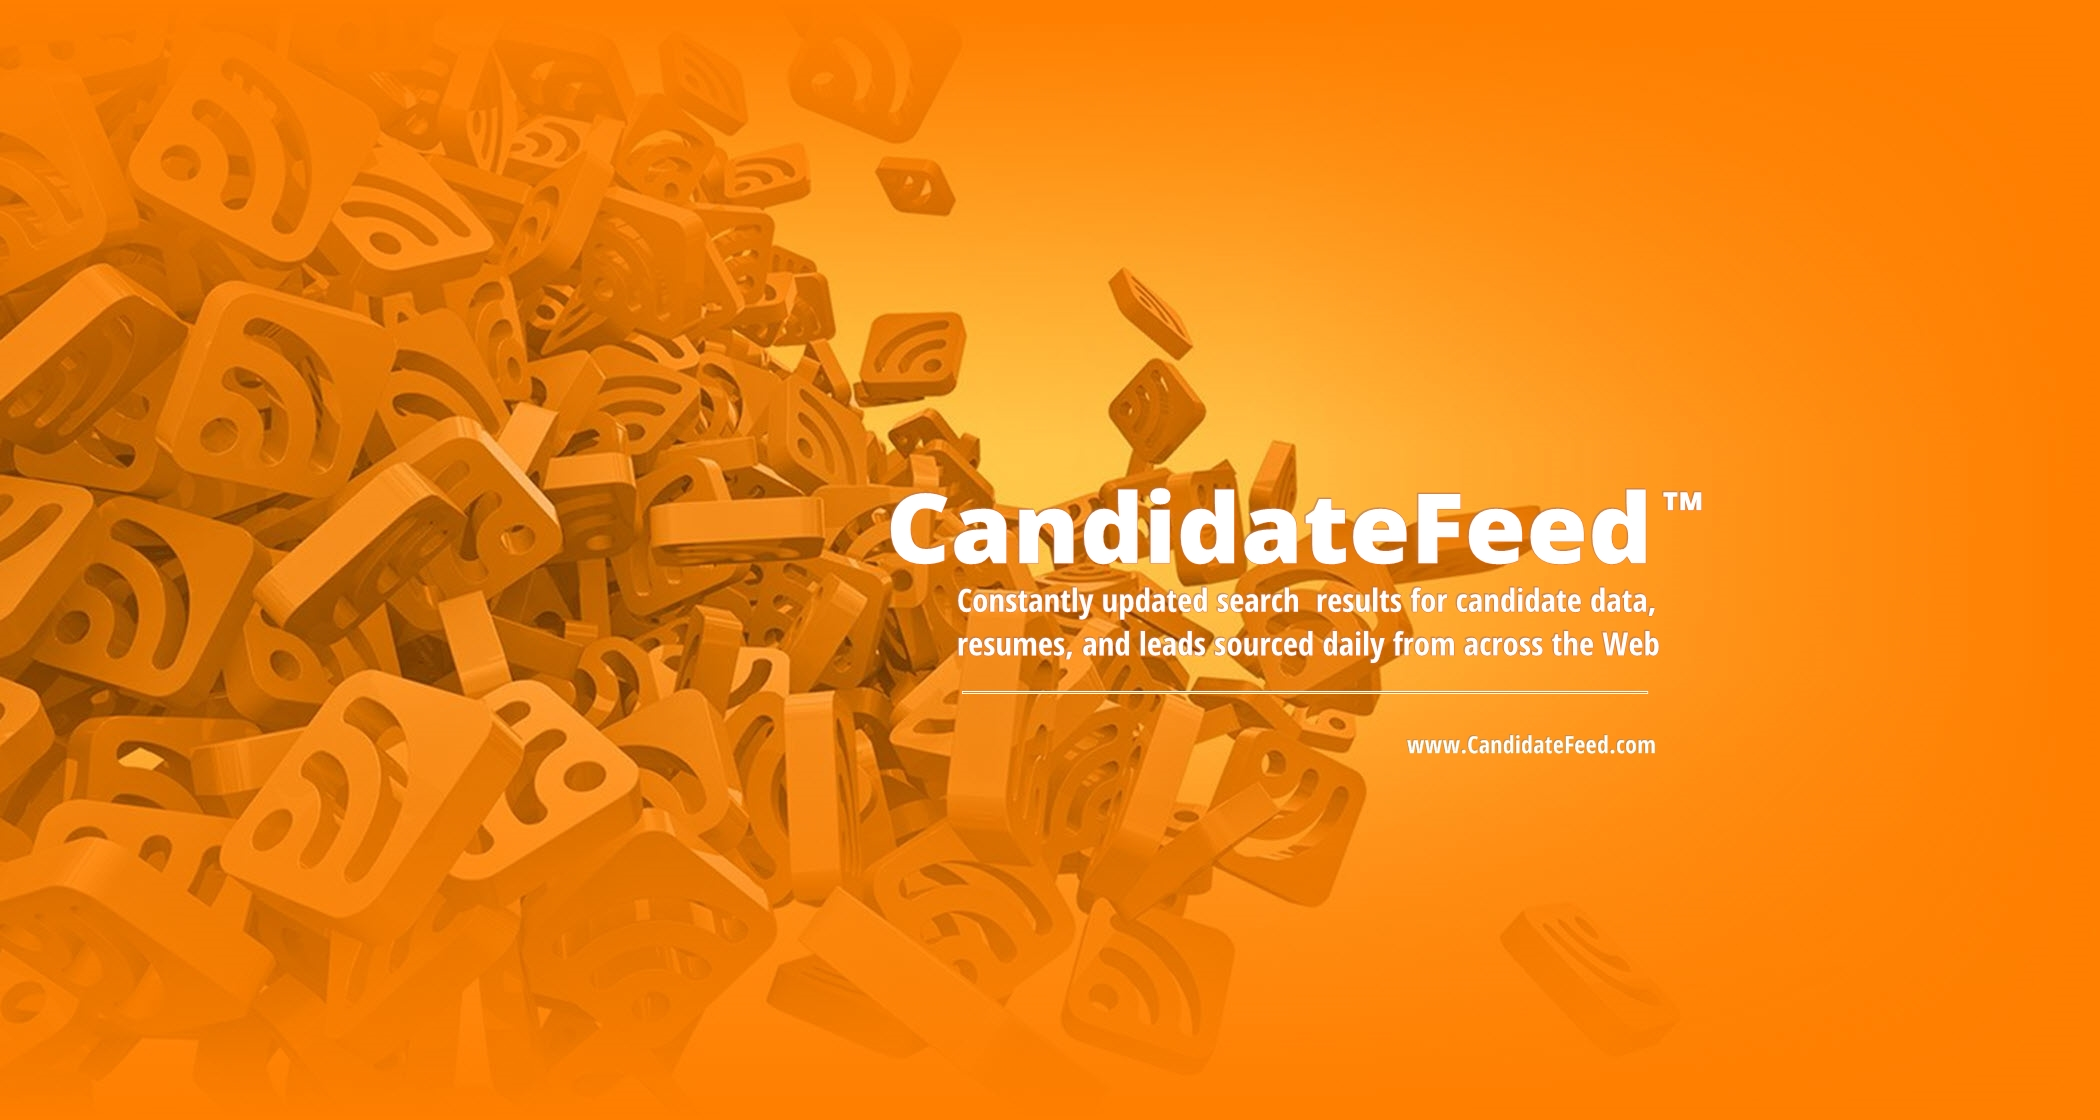 CandidateFeed.com | Candidate leads, updated daily